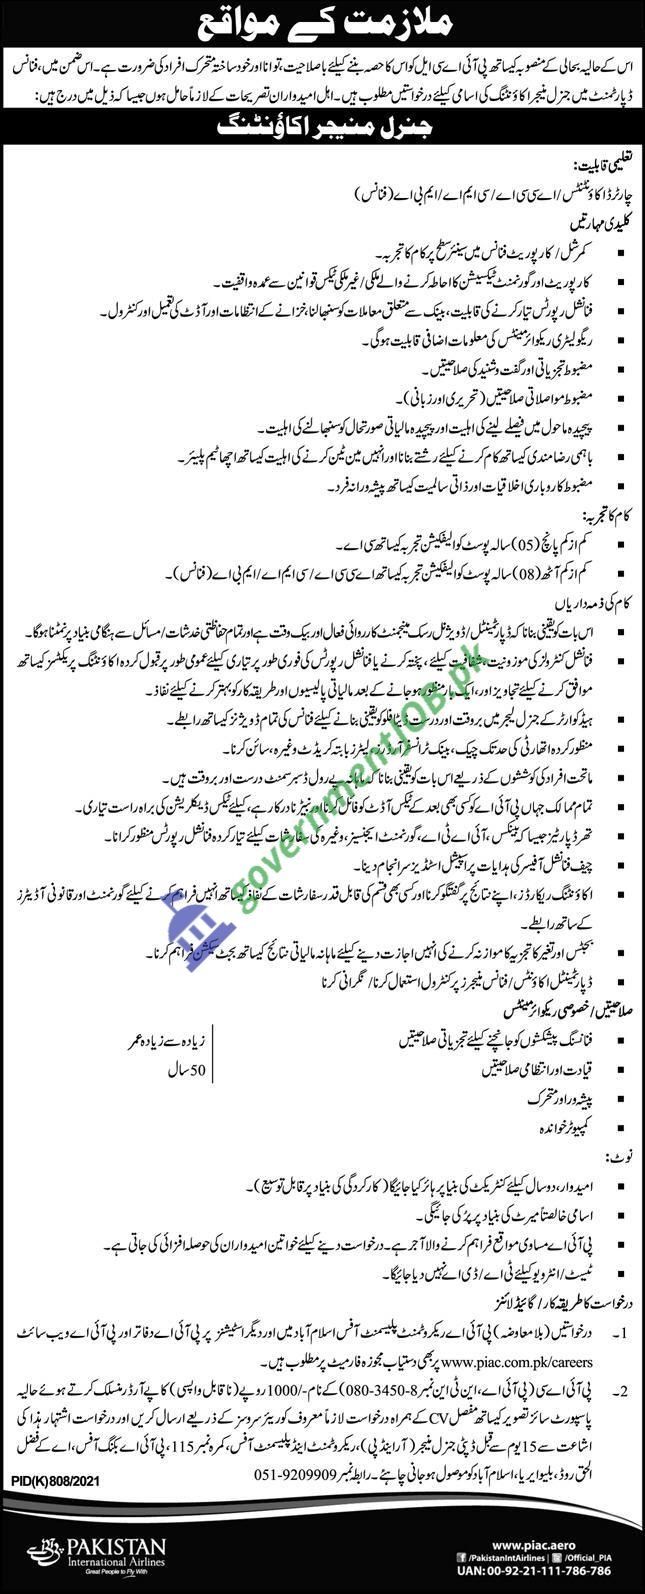 PIA Jobs 2021 – General Manager Accountant Vacancy